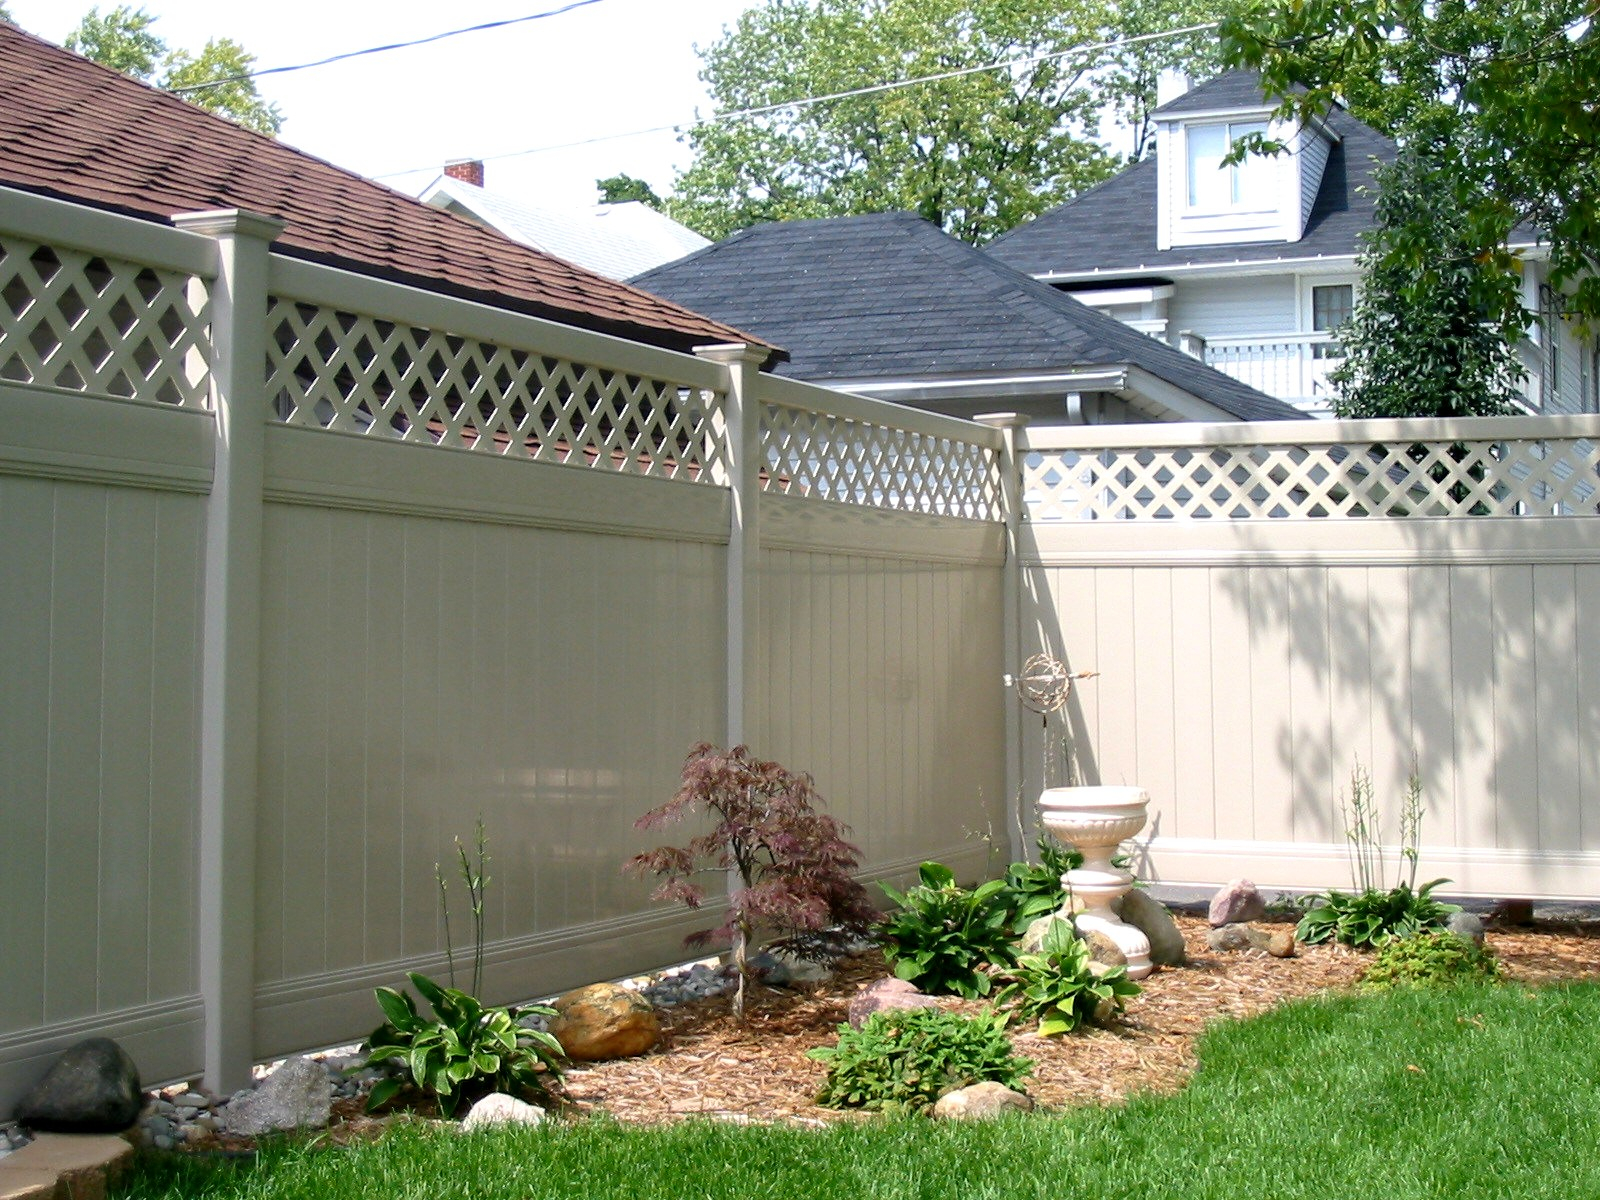 Privacy Fence Vinyl Fence For Securing A Private Yard Area For in Backyard Fencing Options